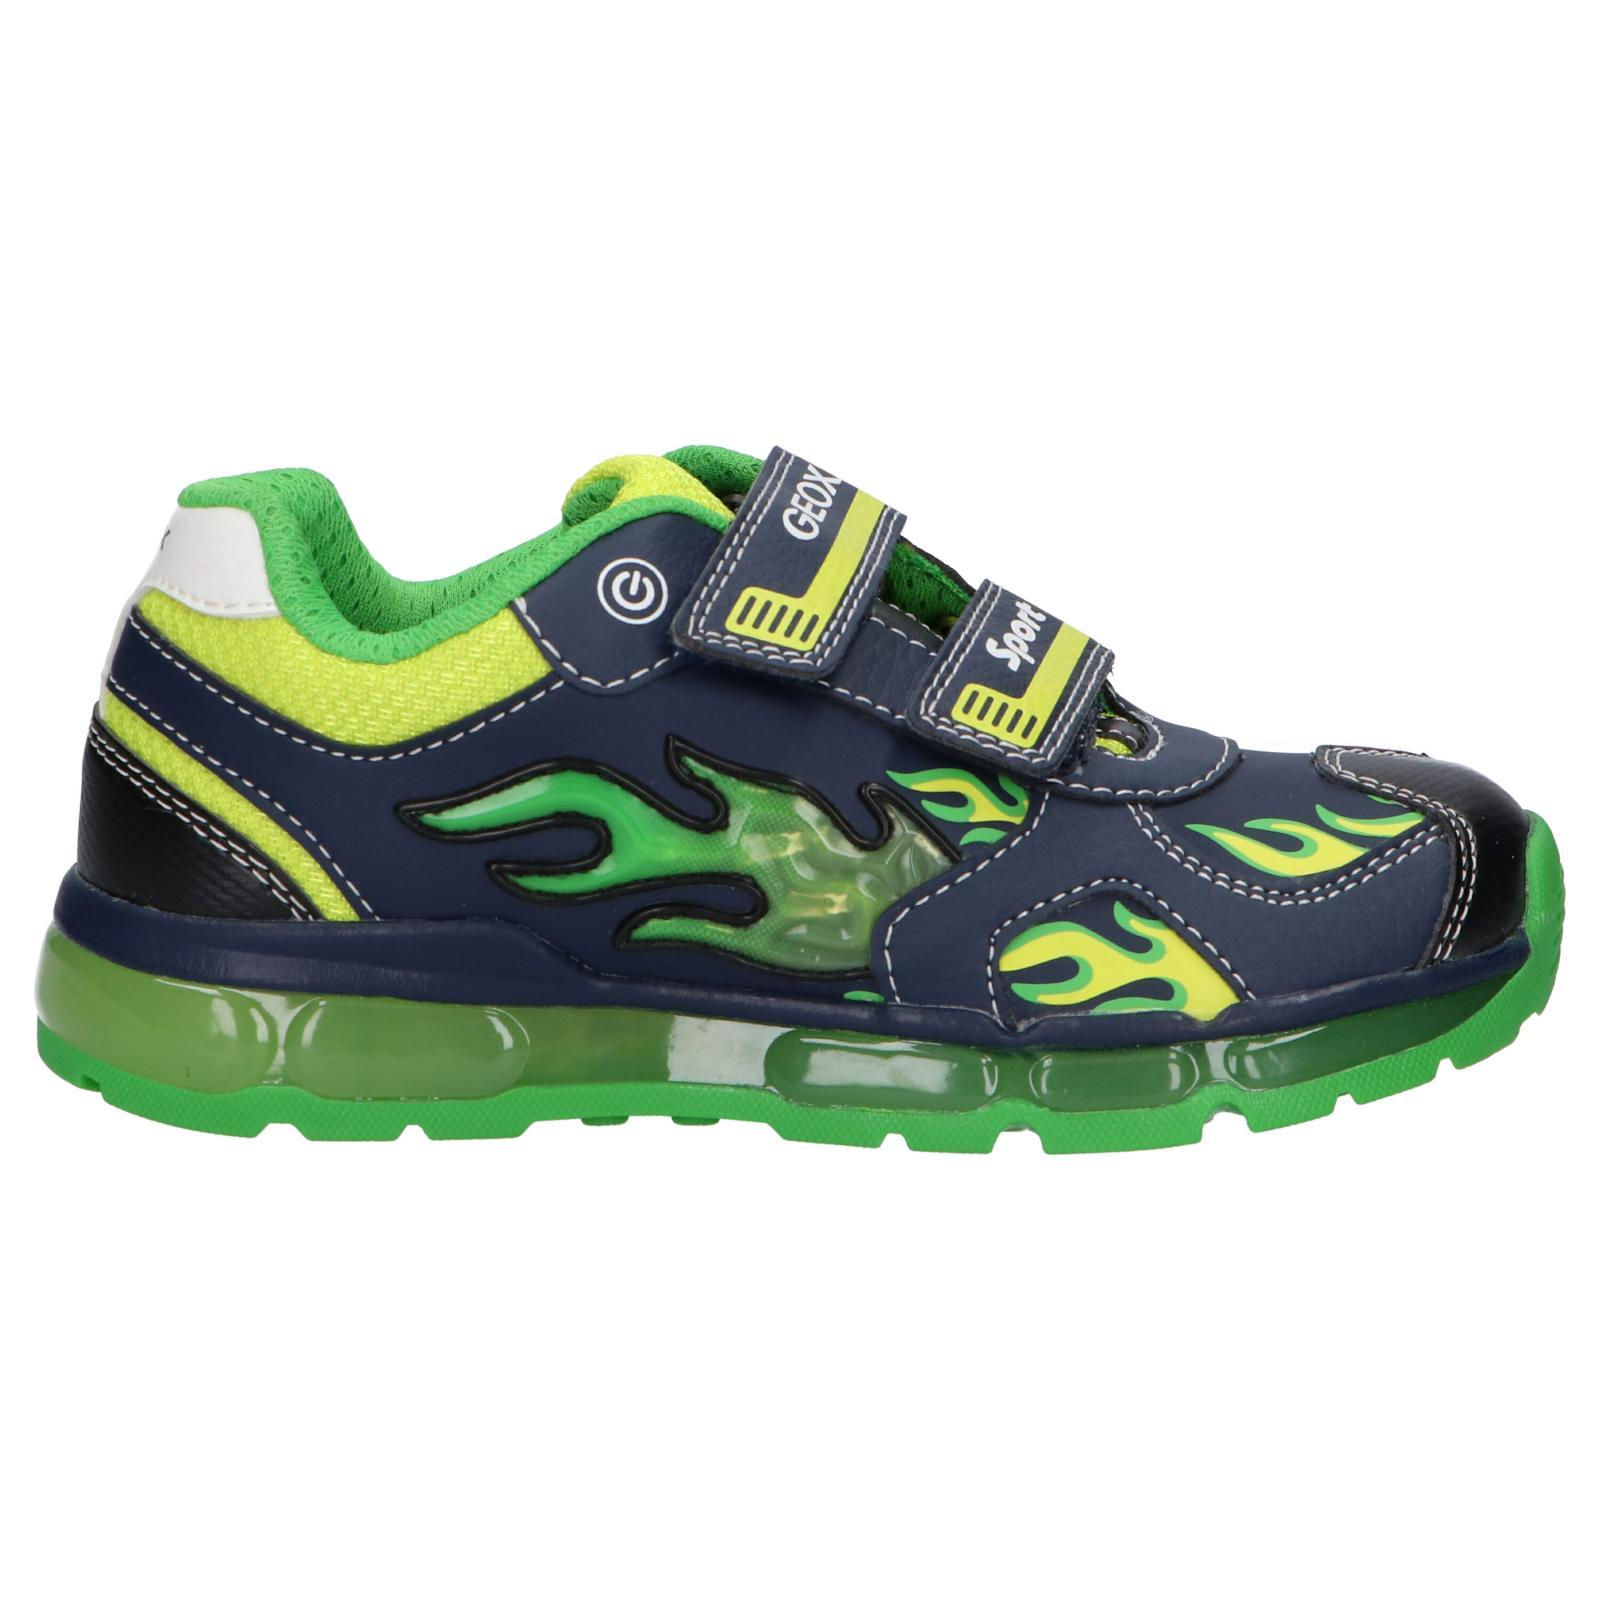 Chaise longue Espacioso Incorporar  Sports shoes for boy GEOX J9444C 054CE J ANDROID C0749 NAVY-LIME Size 37